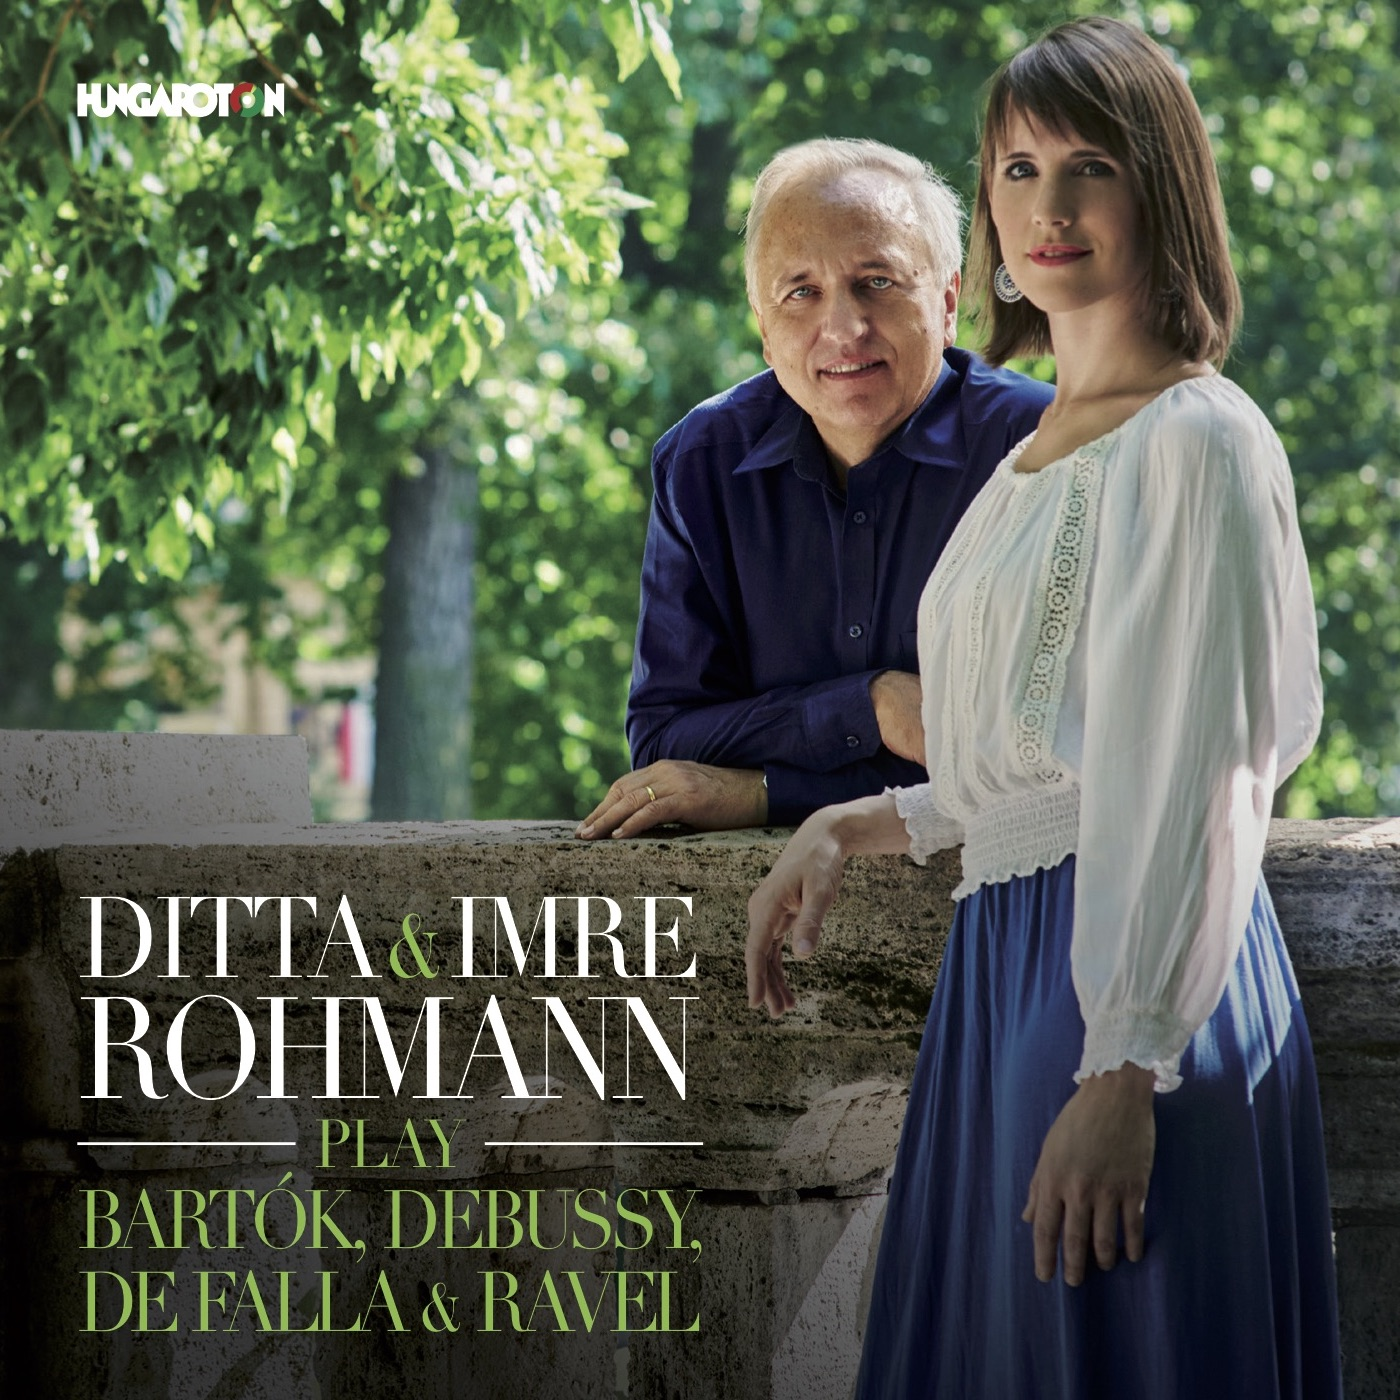 Ditta and Imre Rohmann's Hungaroton-Album has been Awarded the Classical Music Record of the Year - The